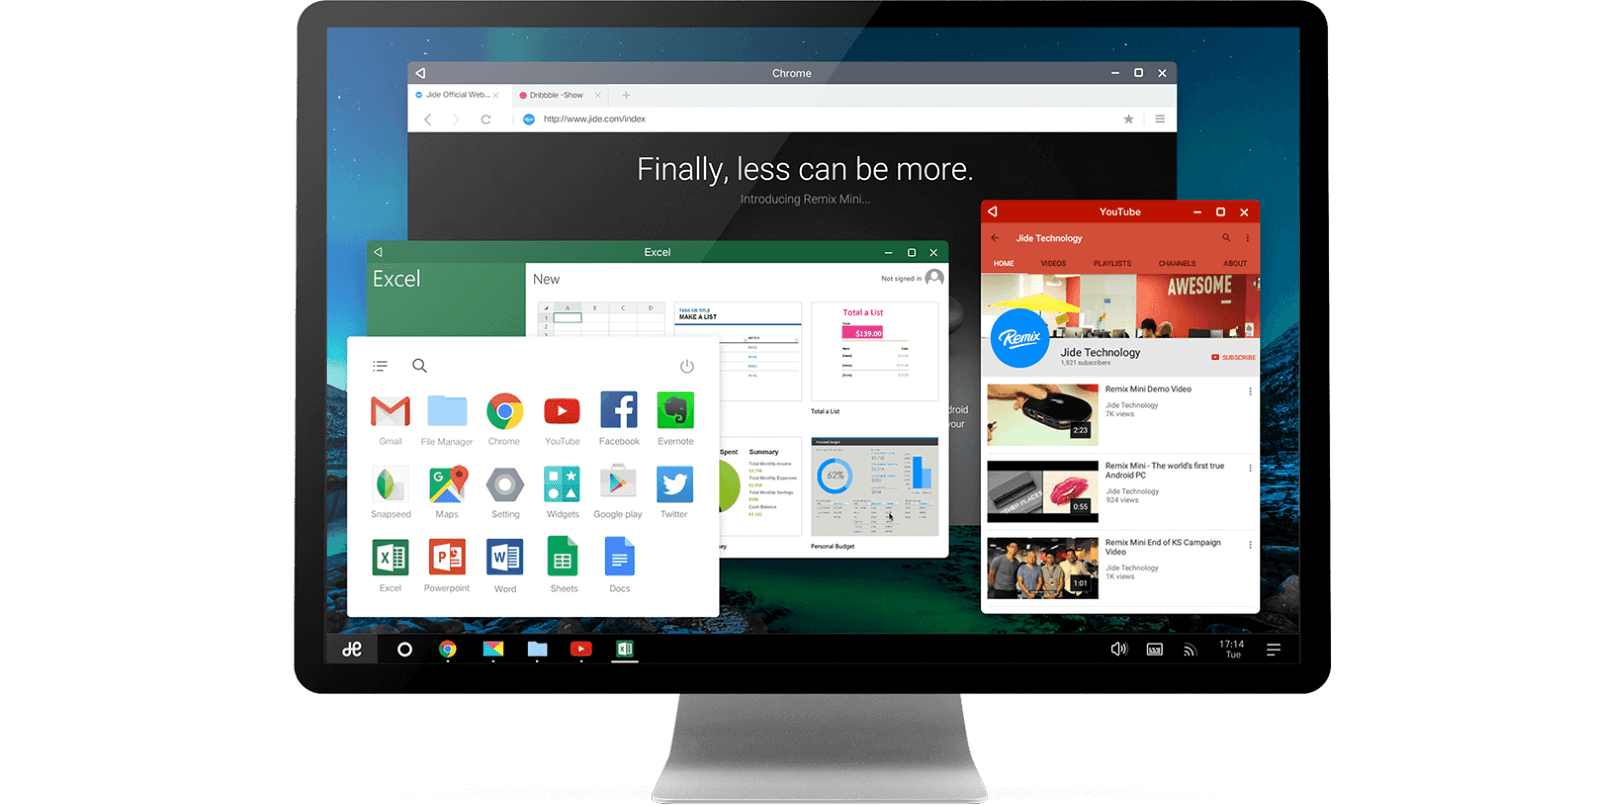 The awesome Android Remix OS fork will soon breathe life into virtually any old PC